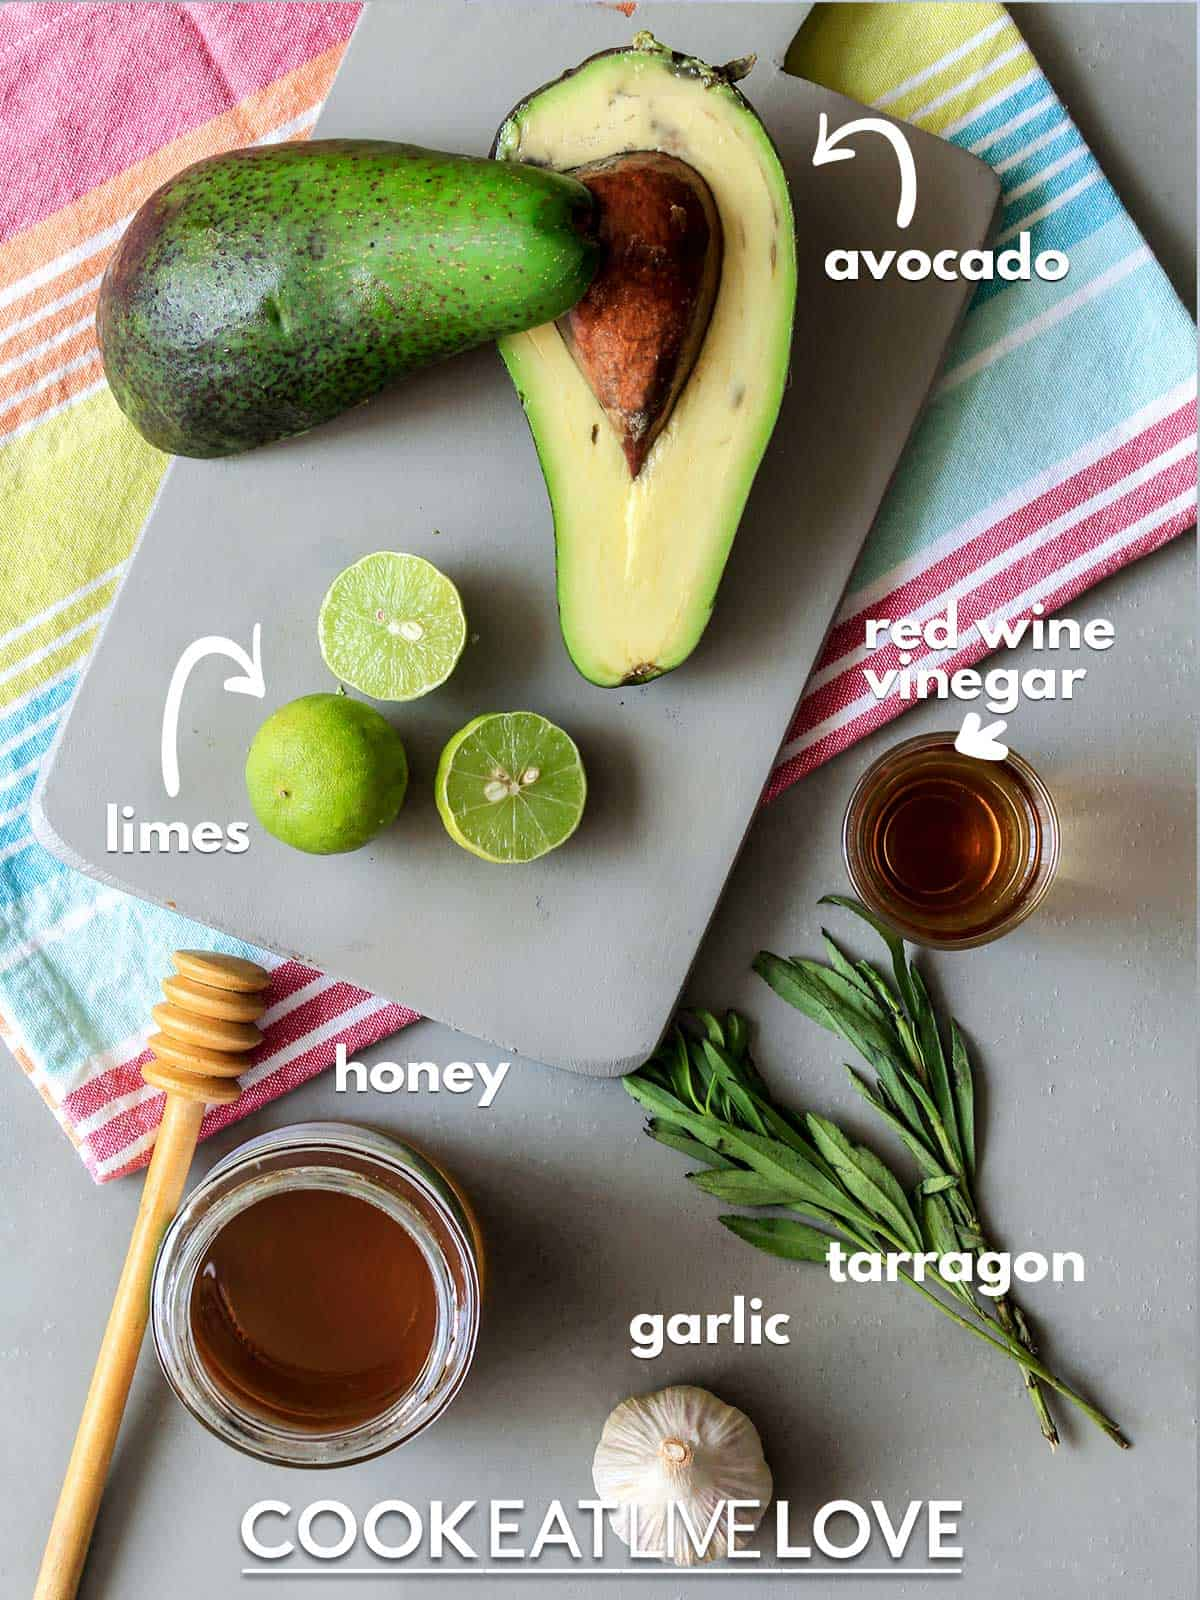 Ingredients to make salad dressing on the table with labels